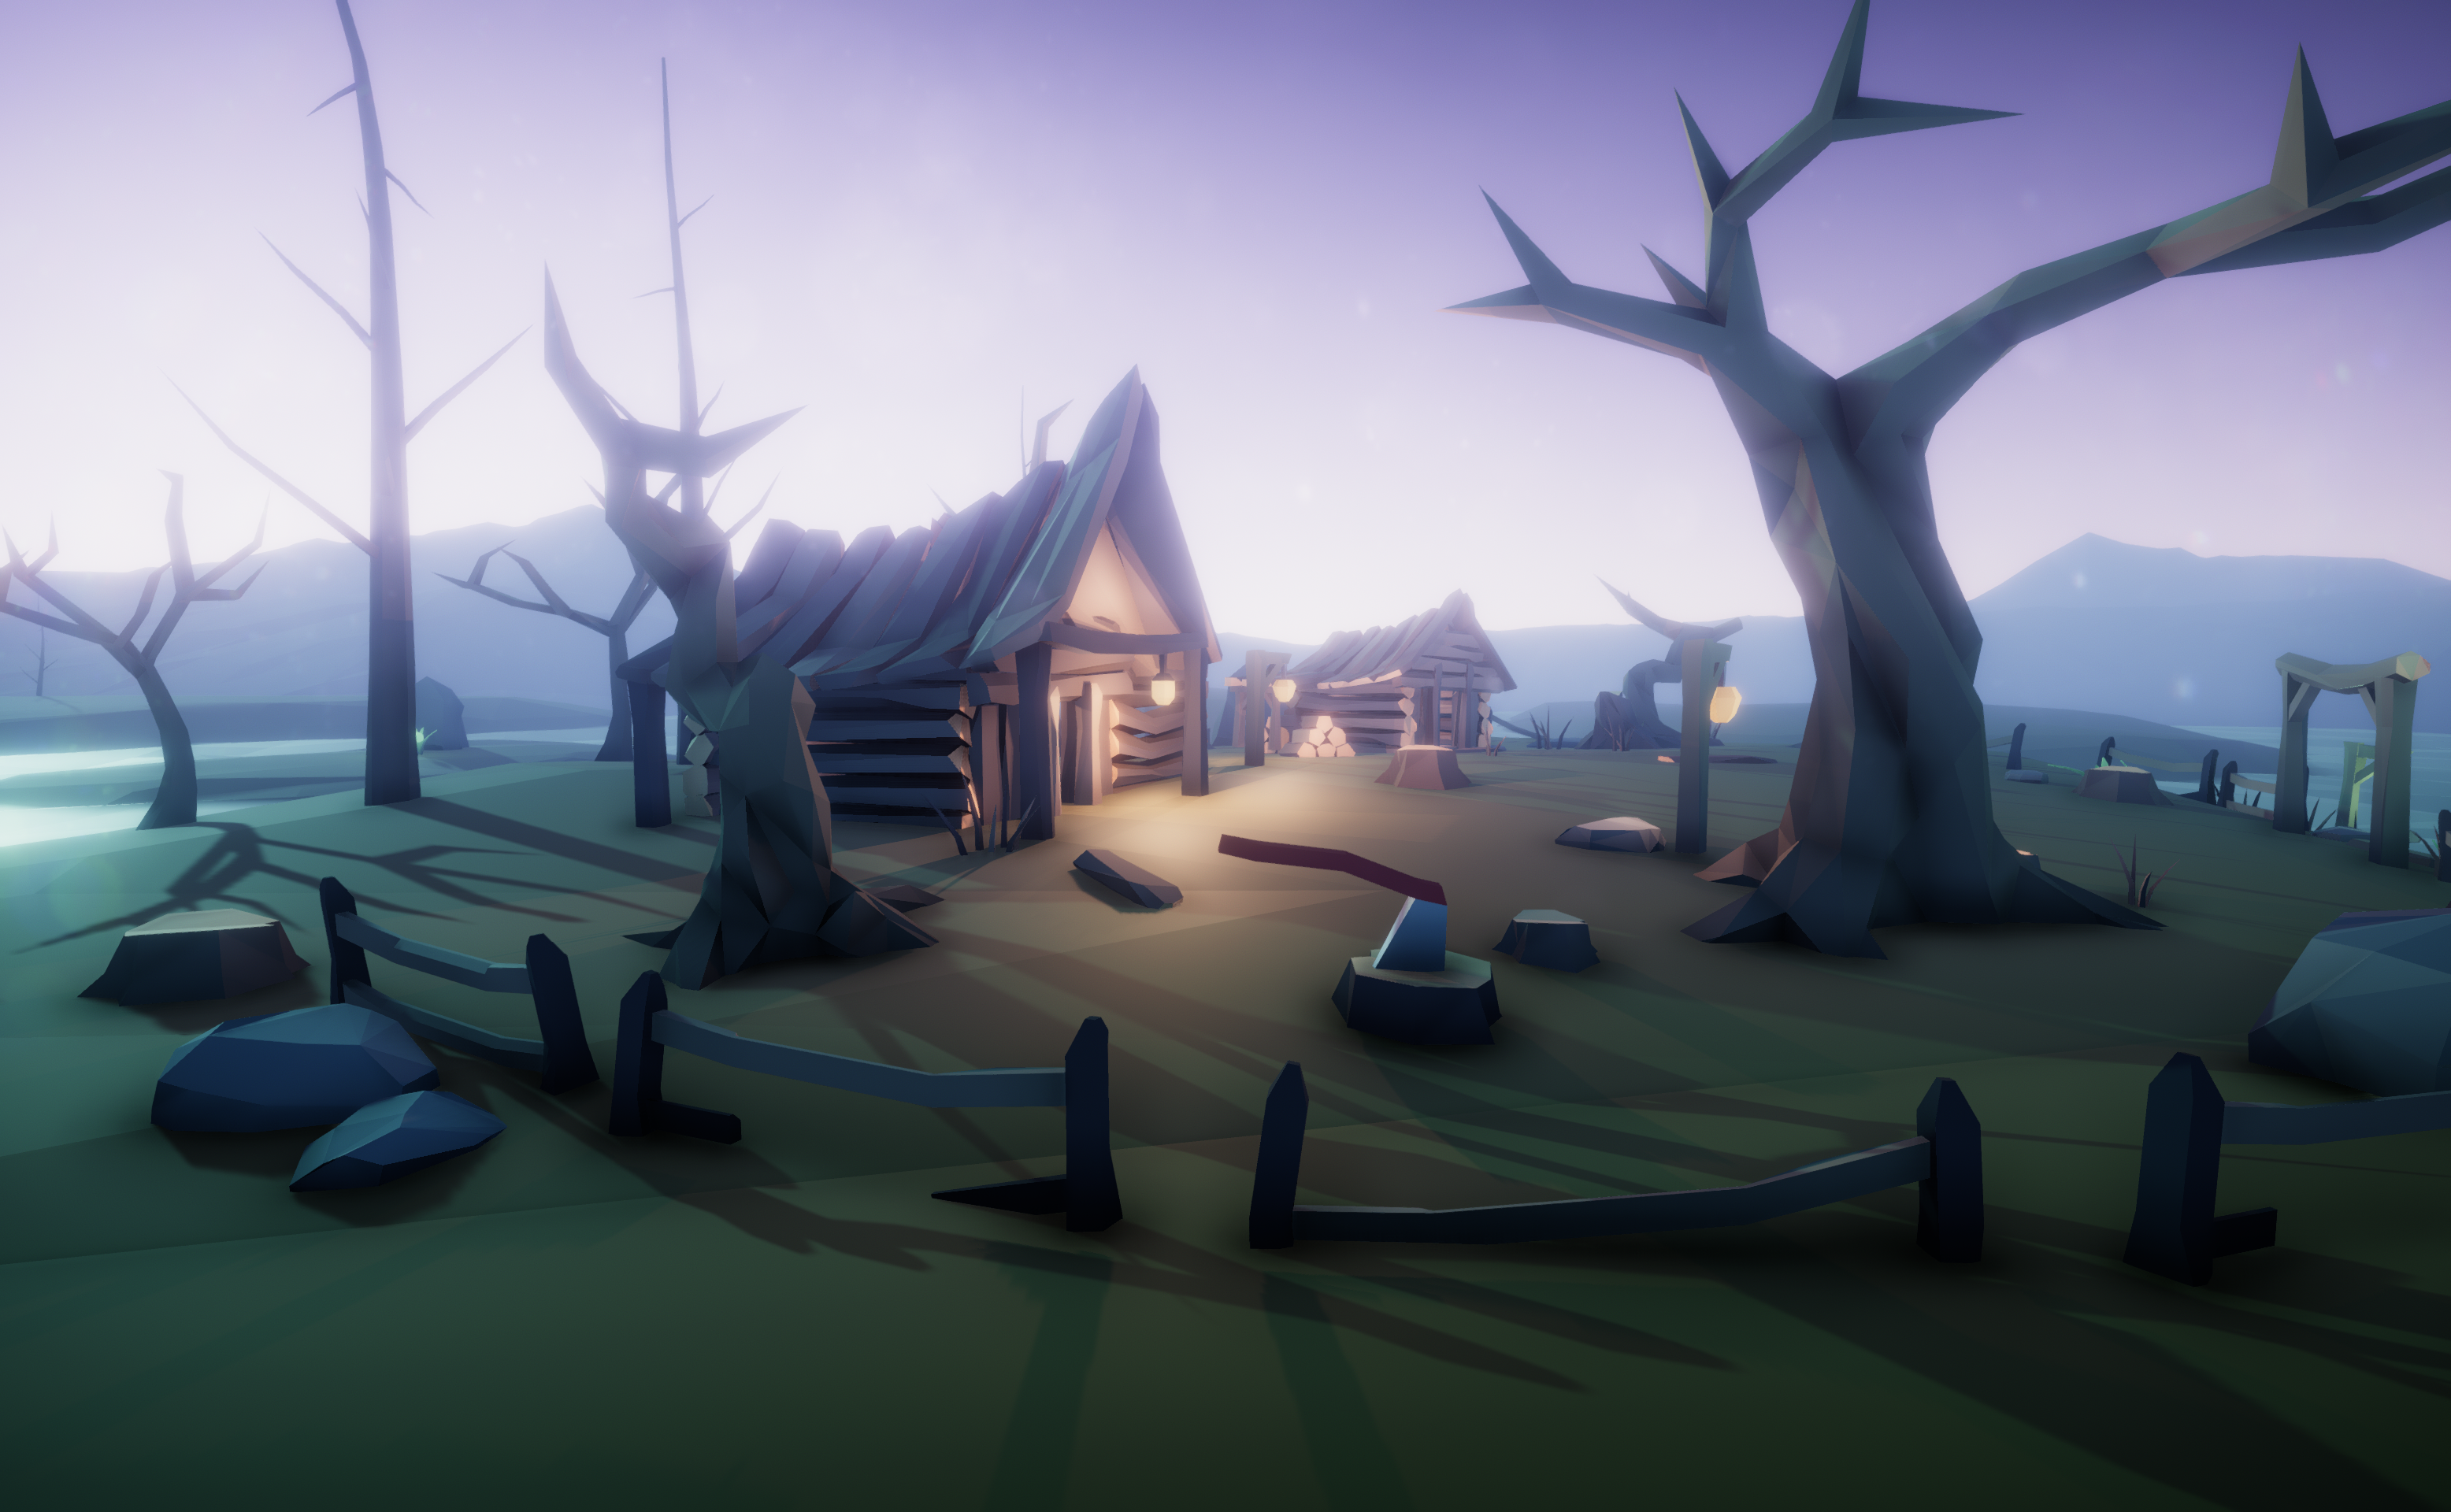 Swamp Village - LowPoly Kit